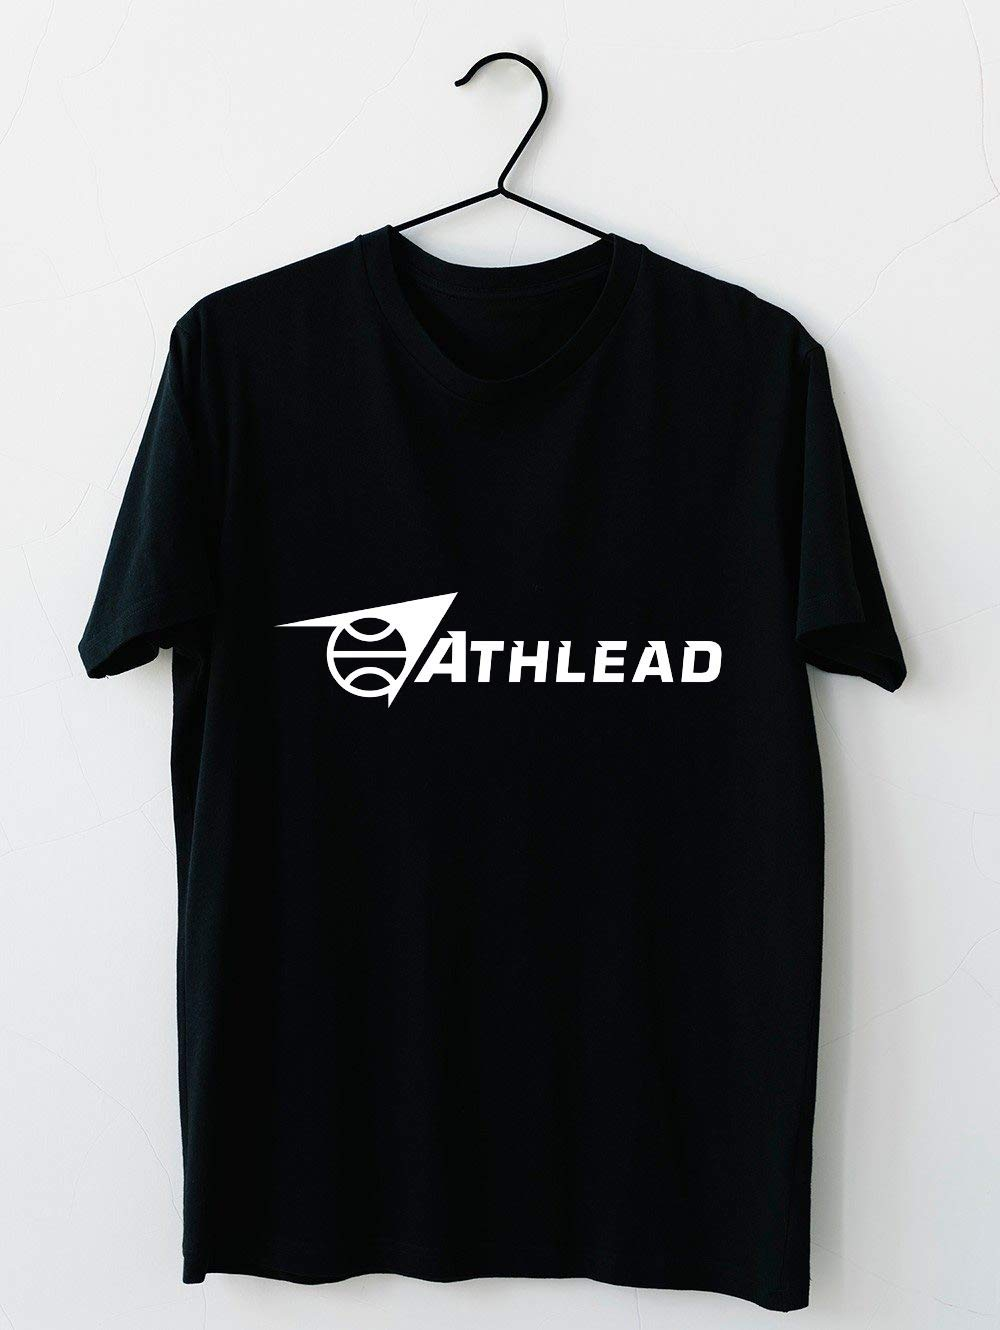 Athlead Sports Marketing Agency As Seen On The Office 2 T Shirt For Uni